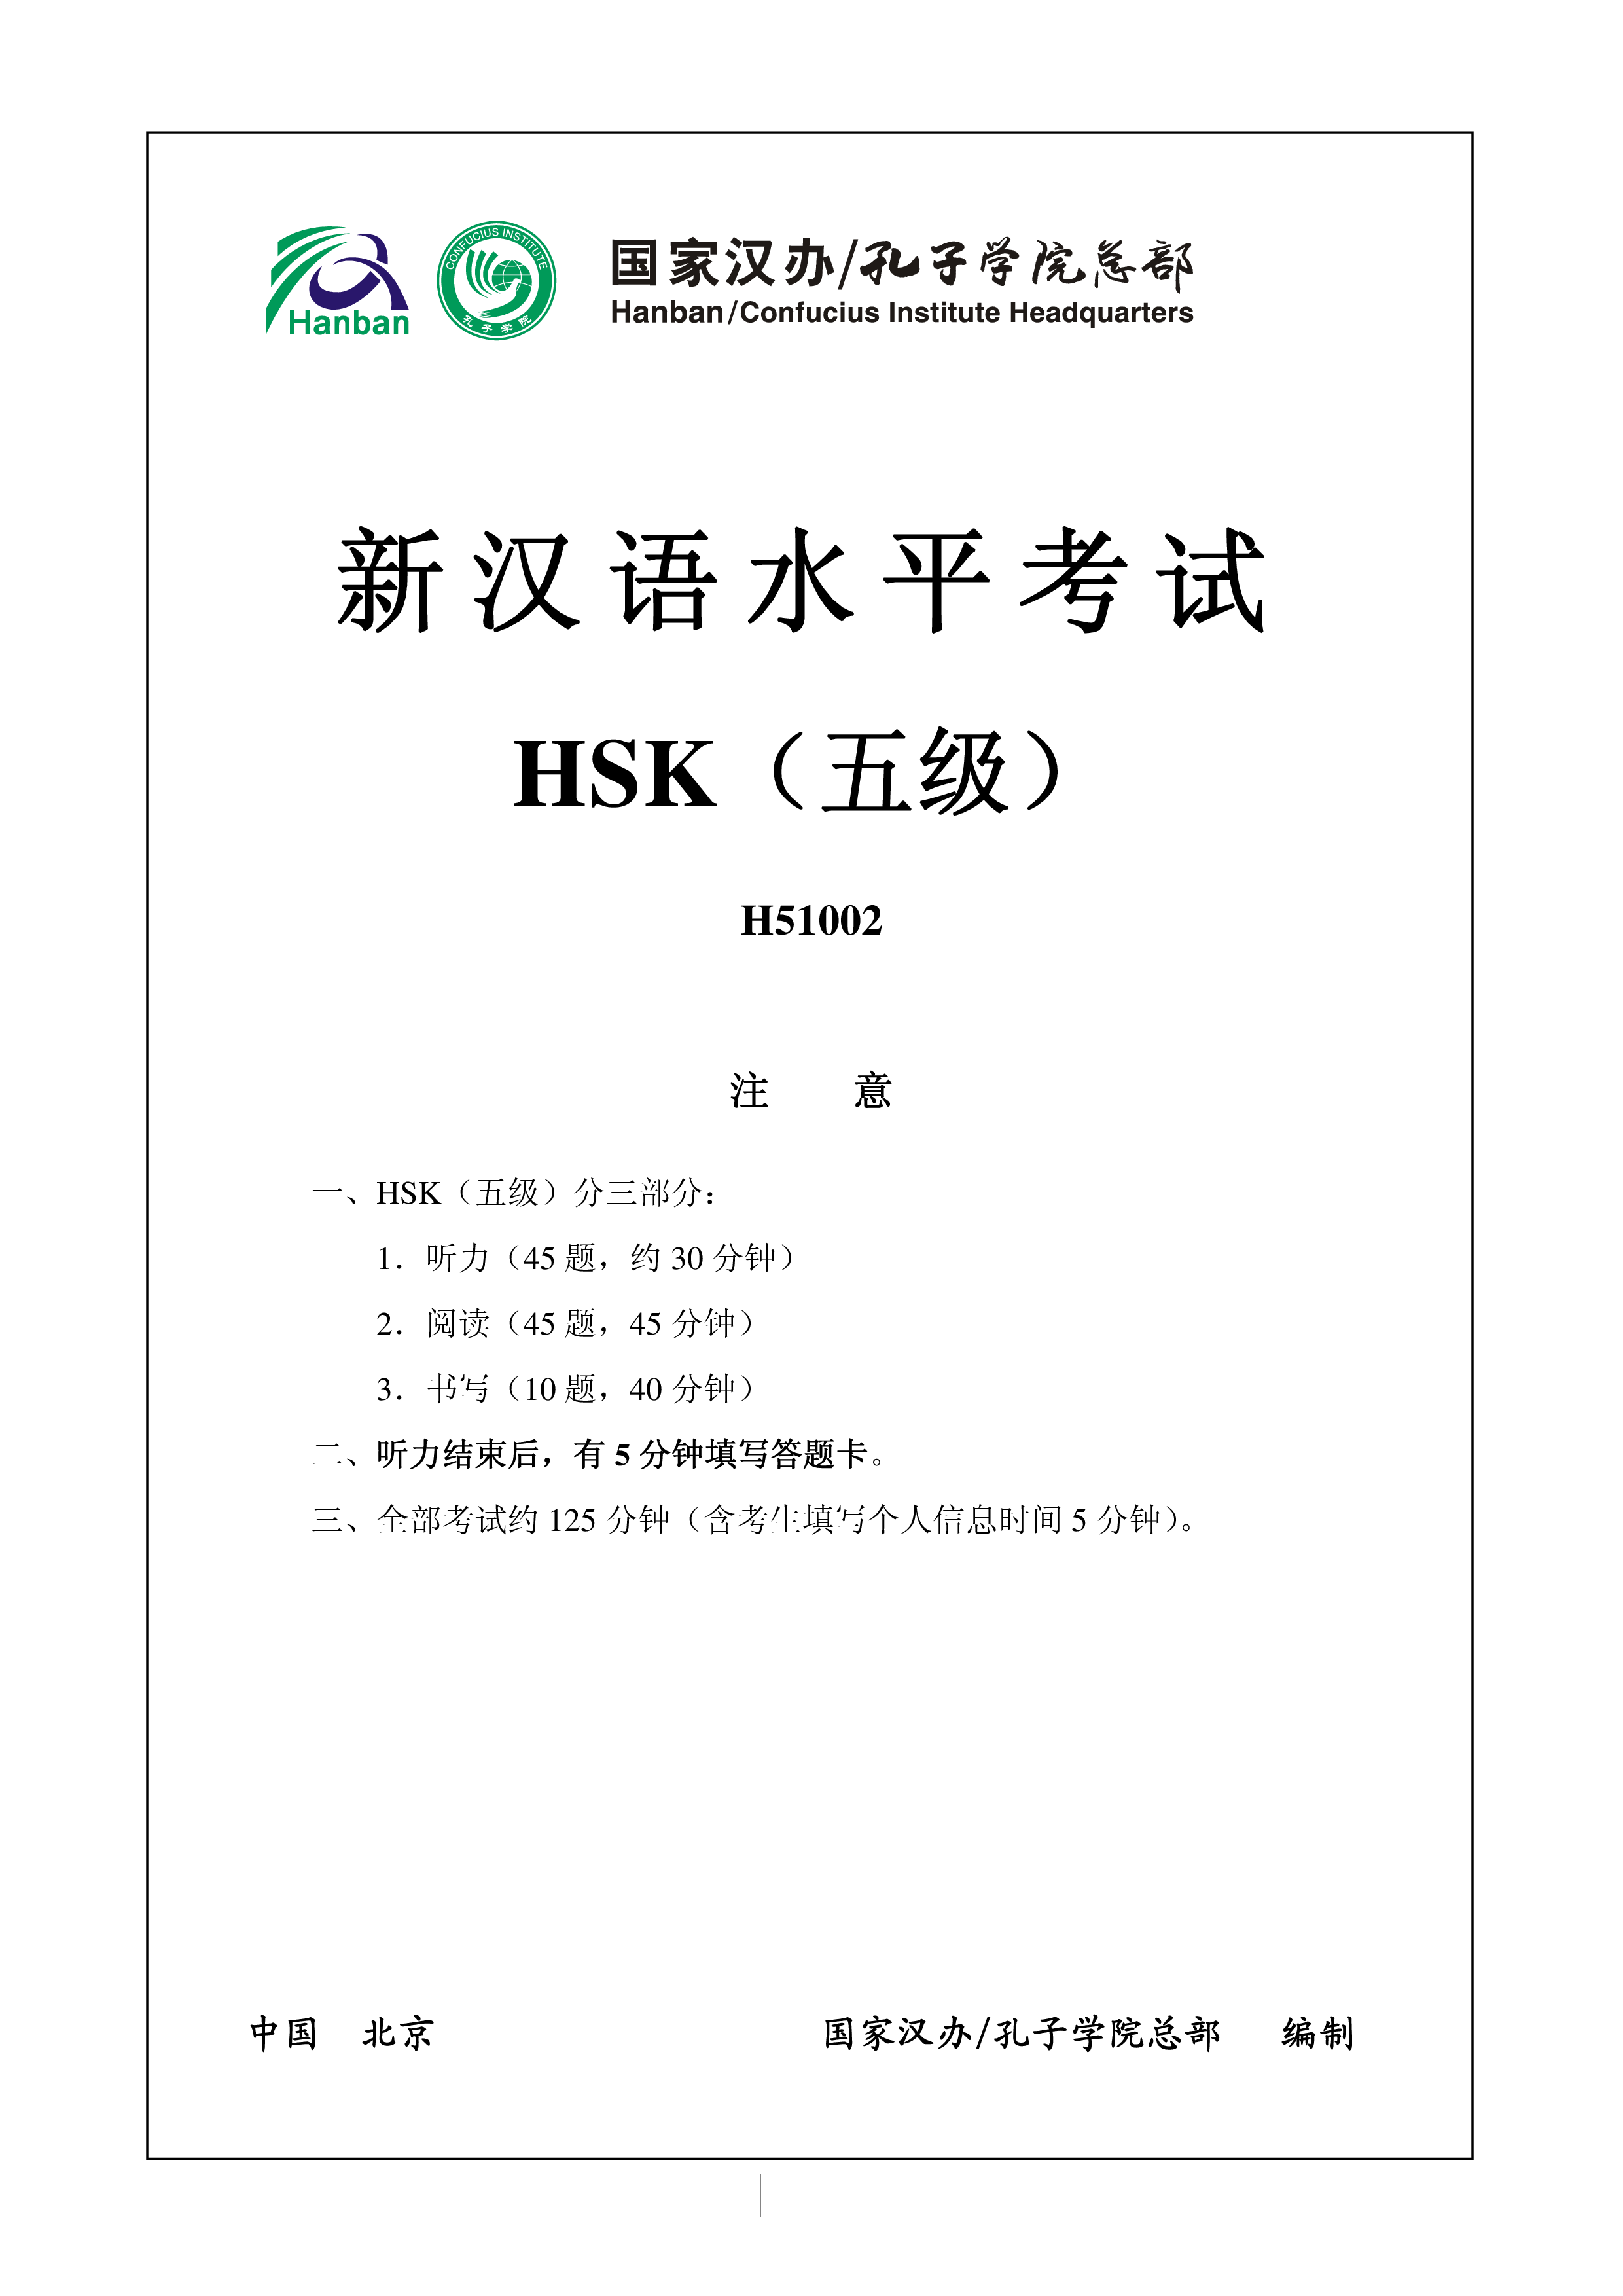 HSK5 Chinese Exam, including Audio and Answers HSK5 H51002 main image